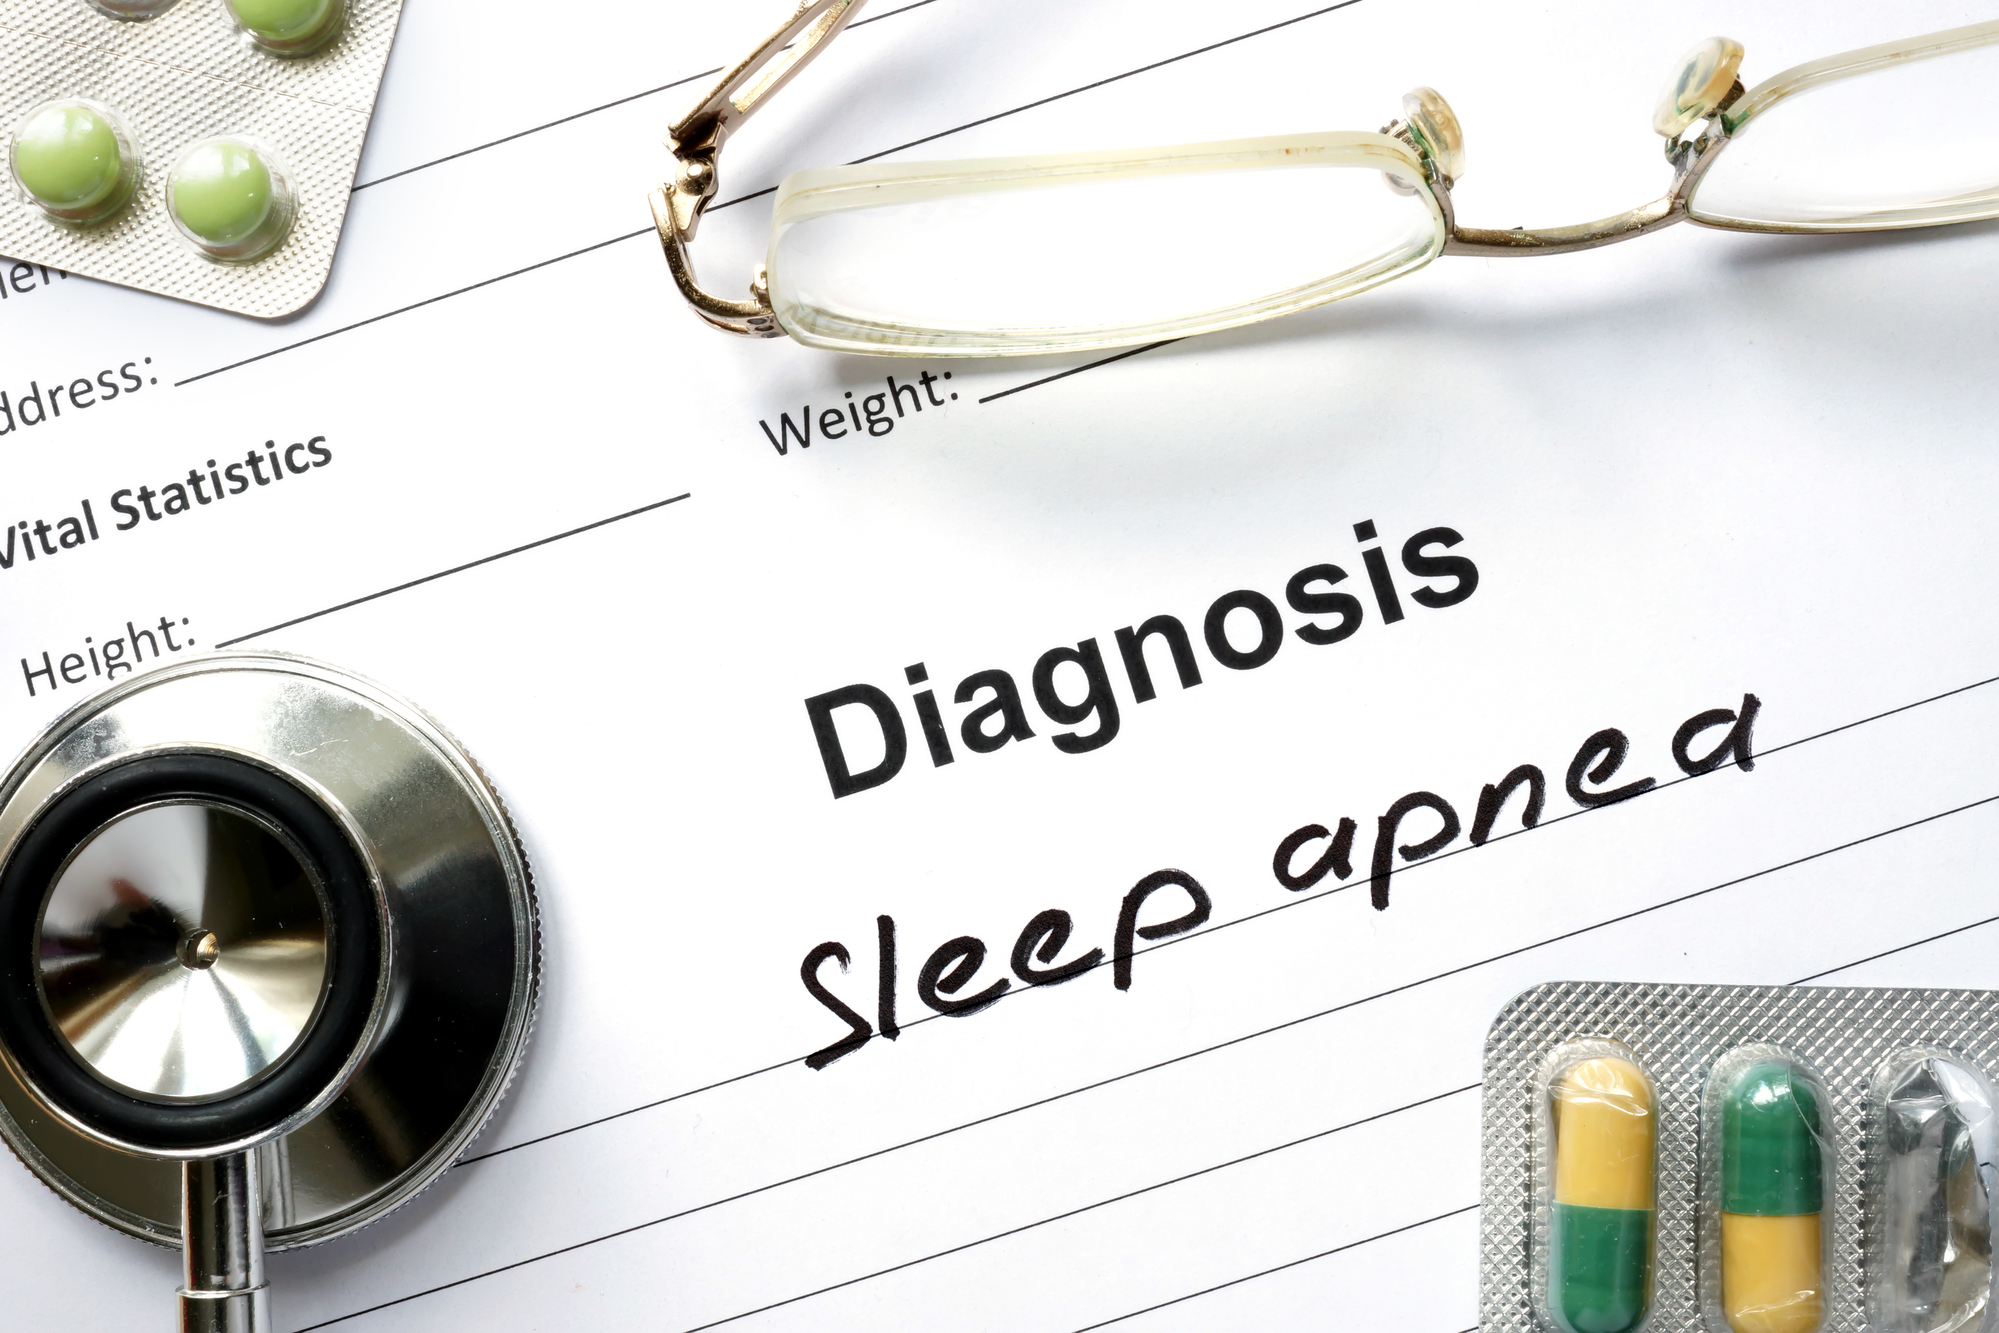 What is sleep apnea?